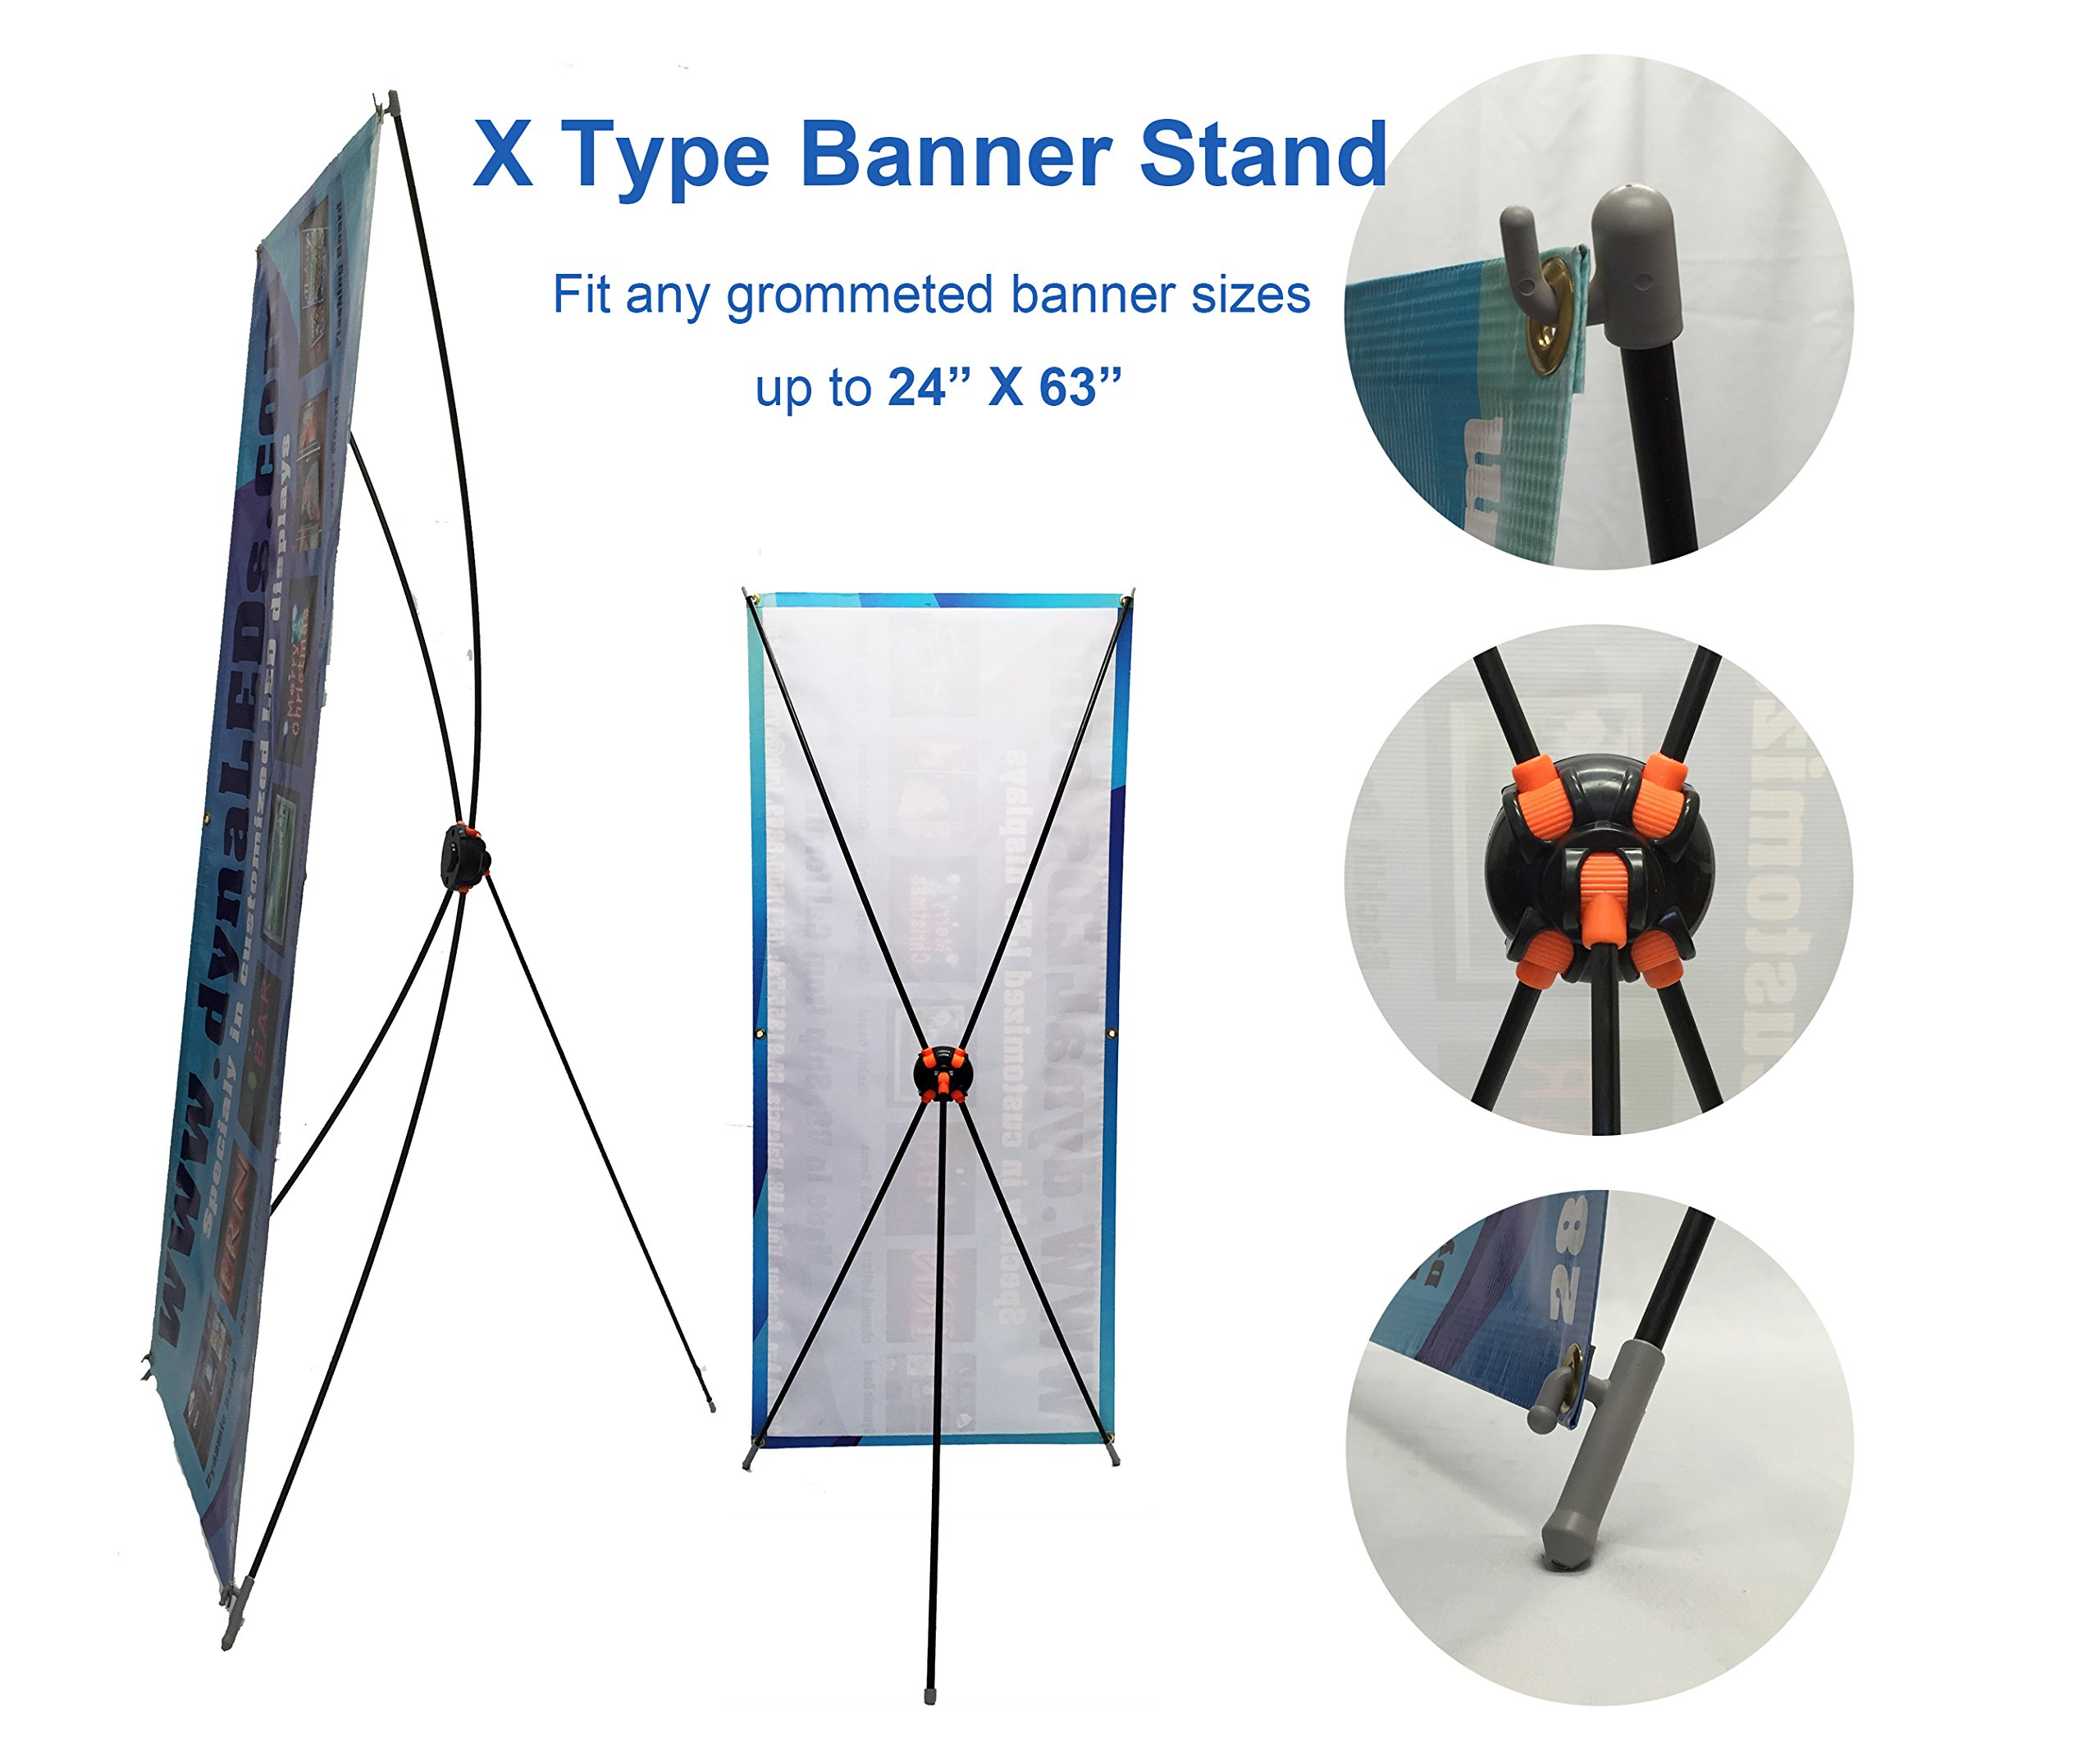 """TheDisplayDeal X type Banner Stand Economy Grade for 24""""X63'' Size Grommeted Banner (2pcs24x63new)"""